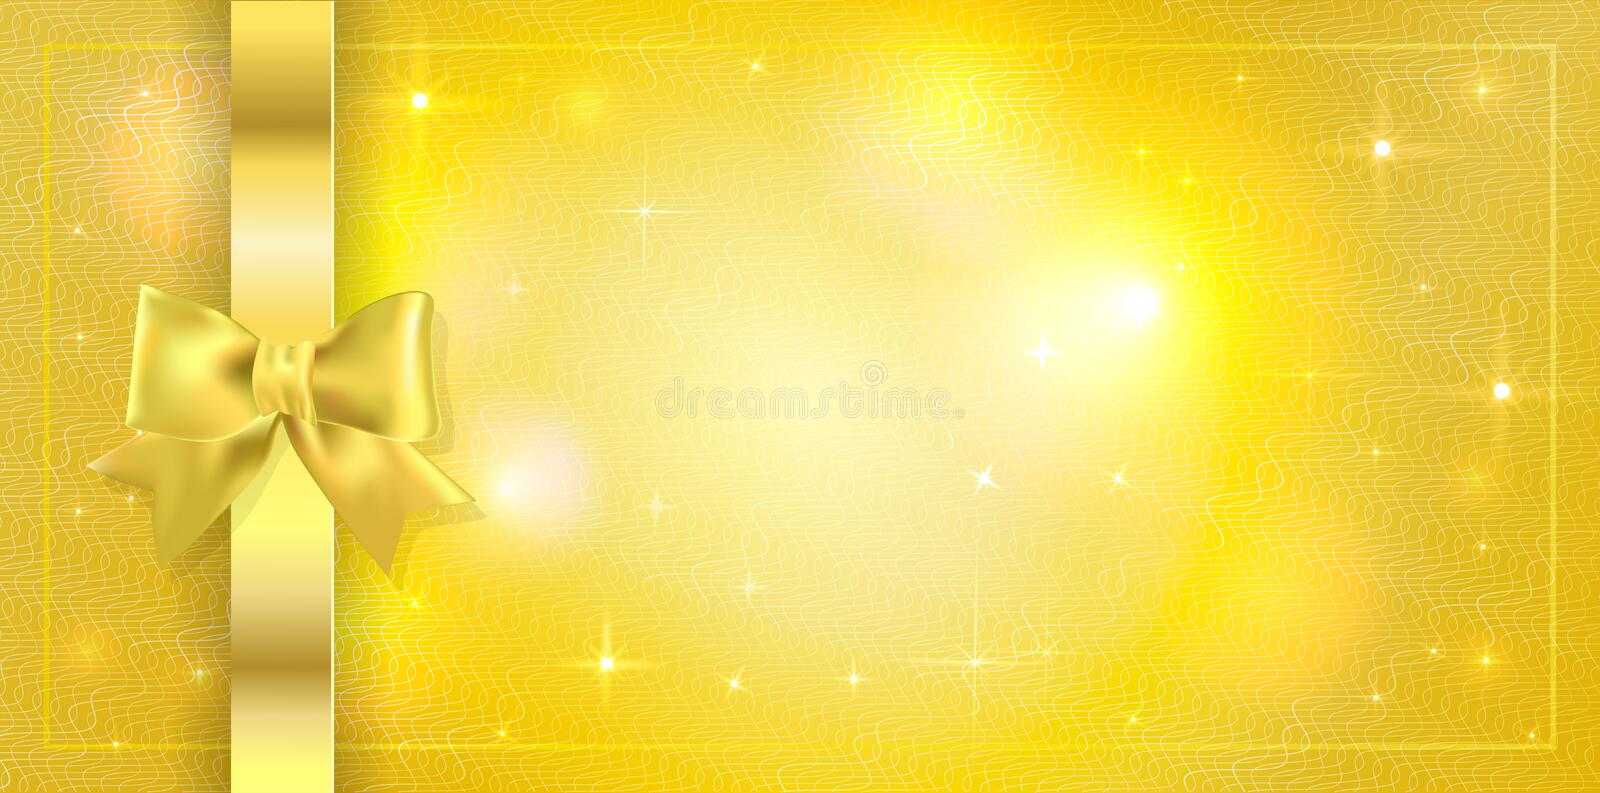 Volume template of Golden ticket, Gift Certificate, Gift Voucher. Holiday reward card design with sparkles stars on golden royalty free stock photos